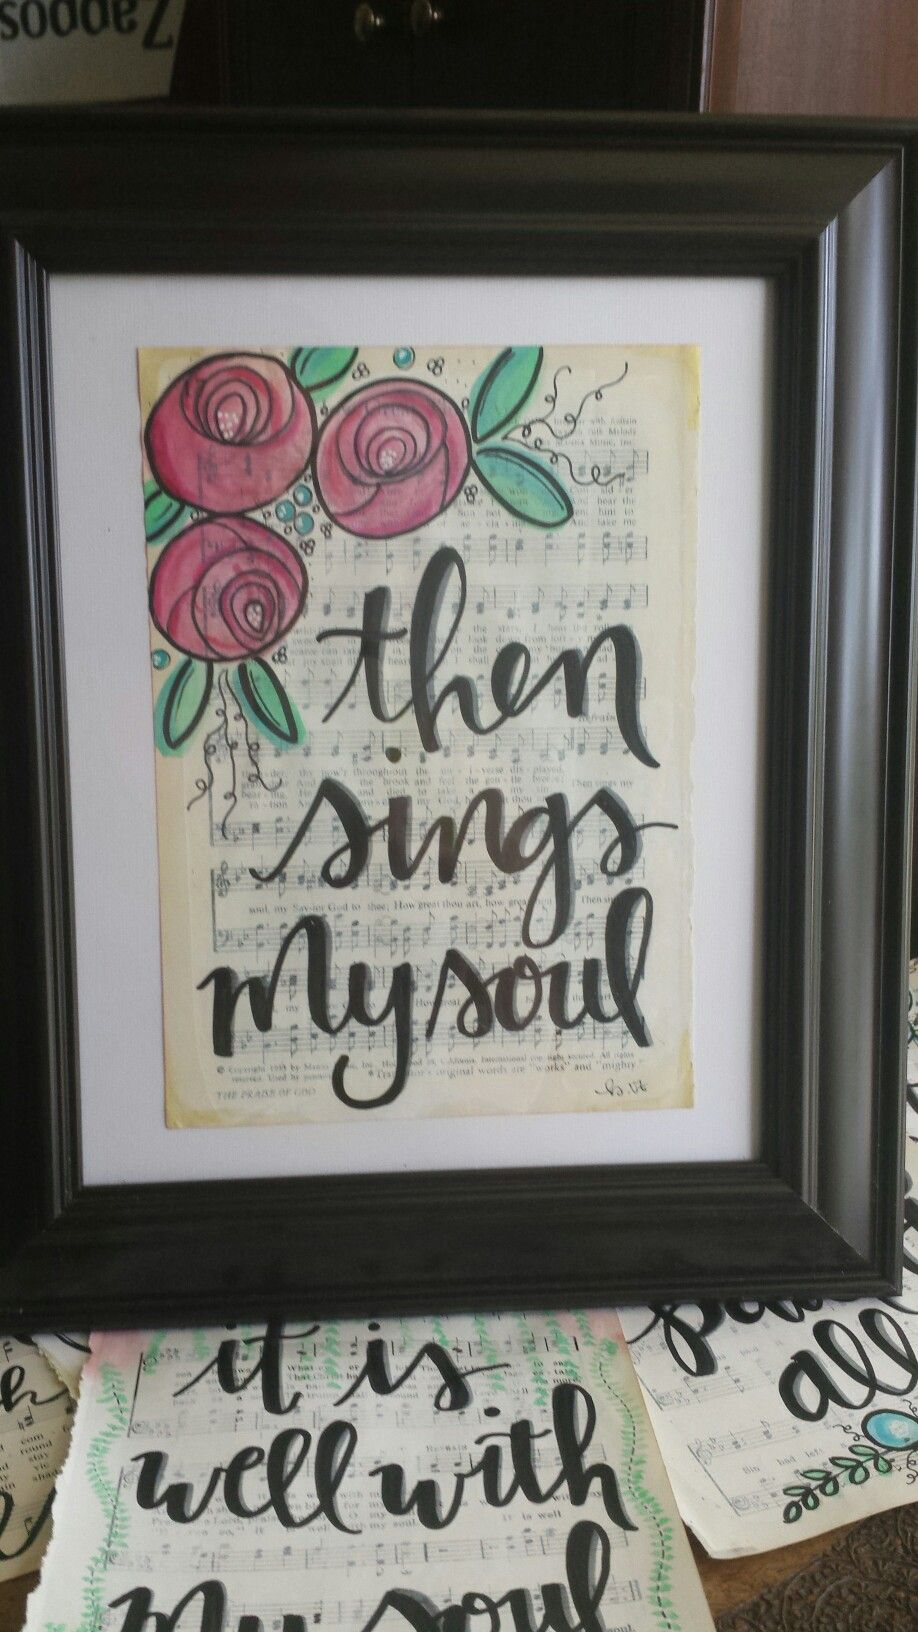 Hymnal Art Yes Please Bonus Points If The Hymn Are From The Lutheran Hymnal Or The Lutheran Service Book Both Copy Hymnal Crafts Sheet Music Art Book Crafts